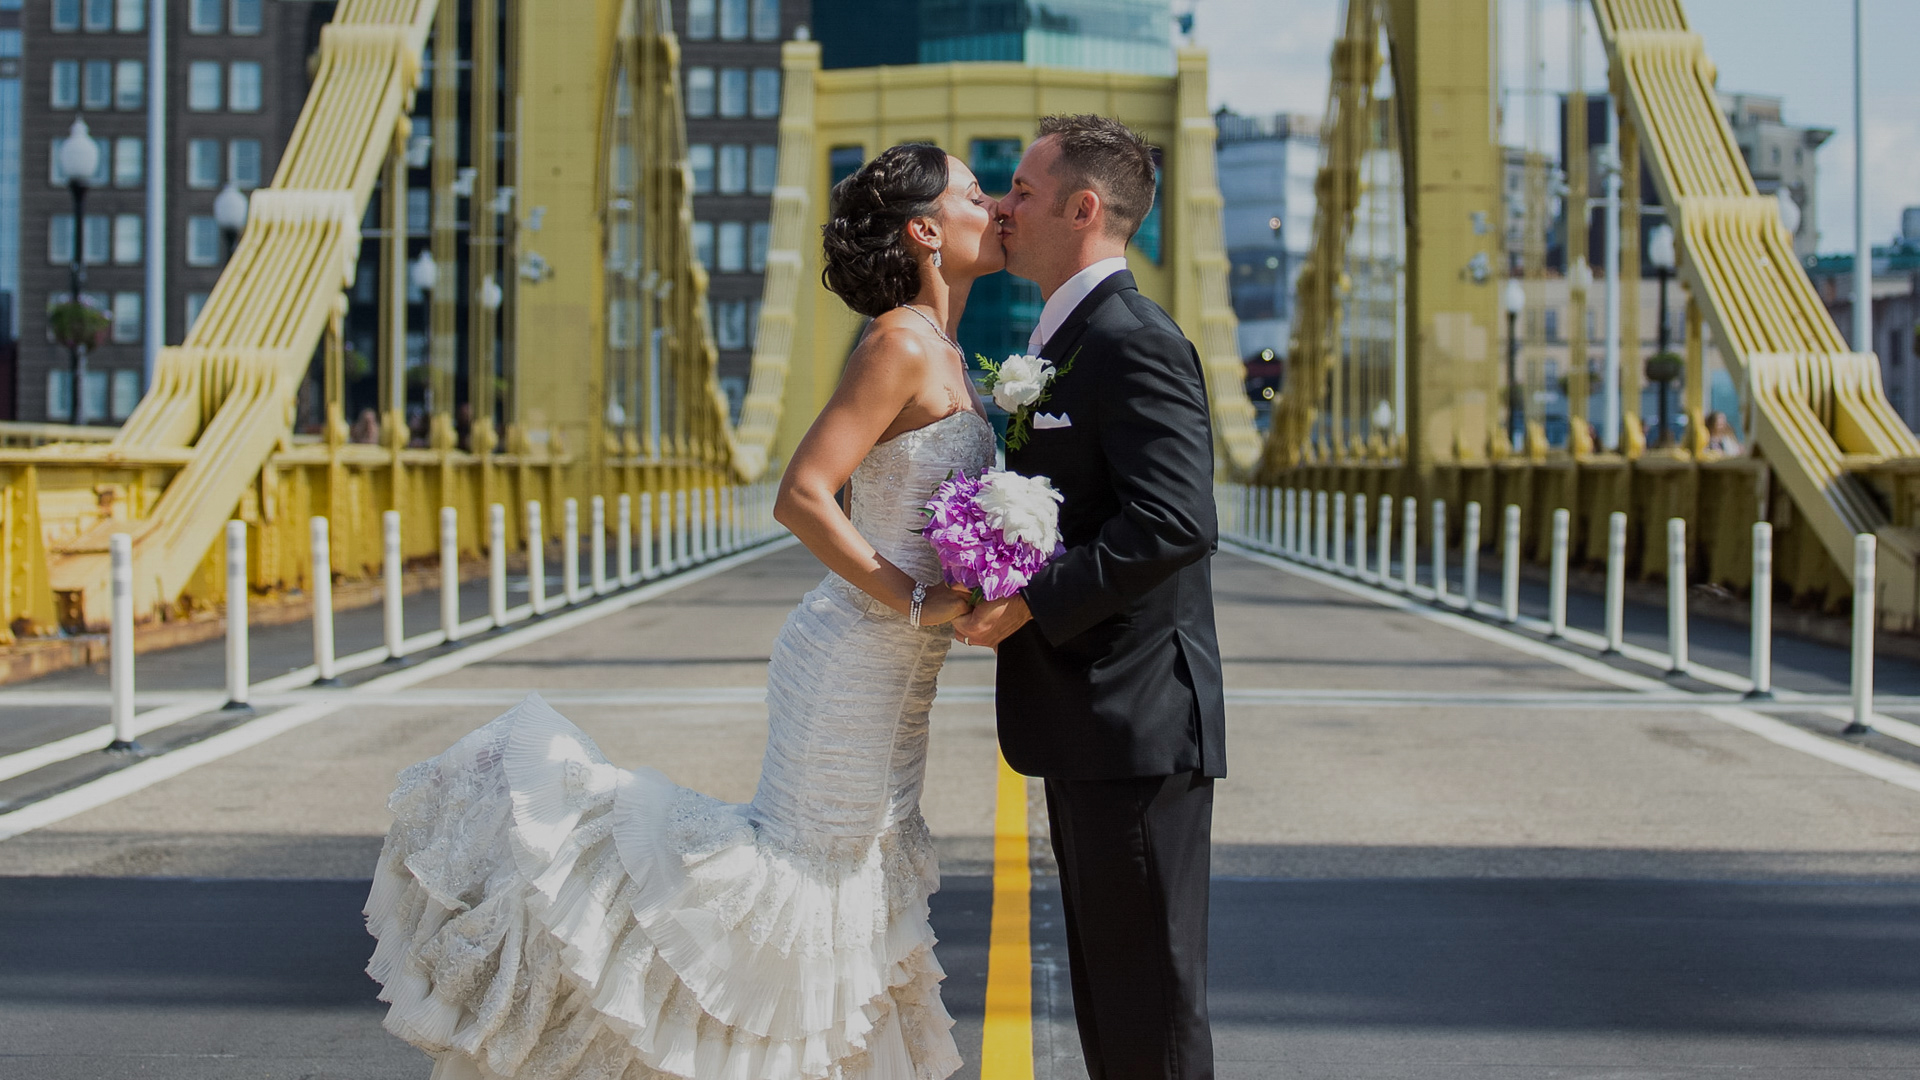 Check portfolios, pricing and availability for wedding photographers in Pittsburgh